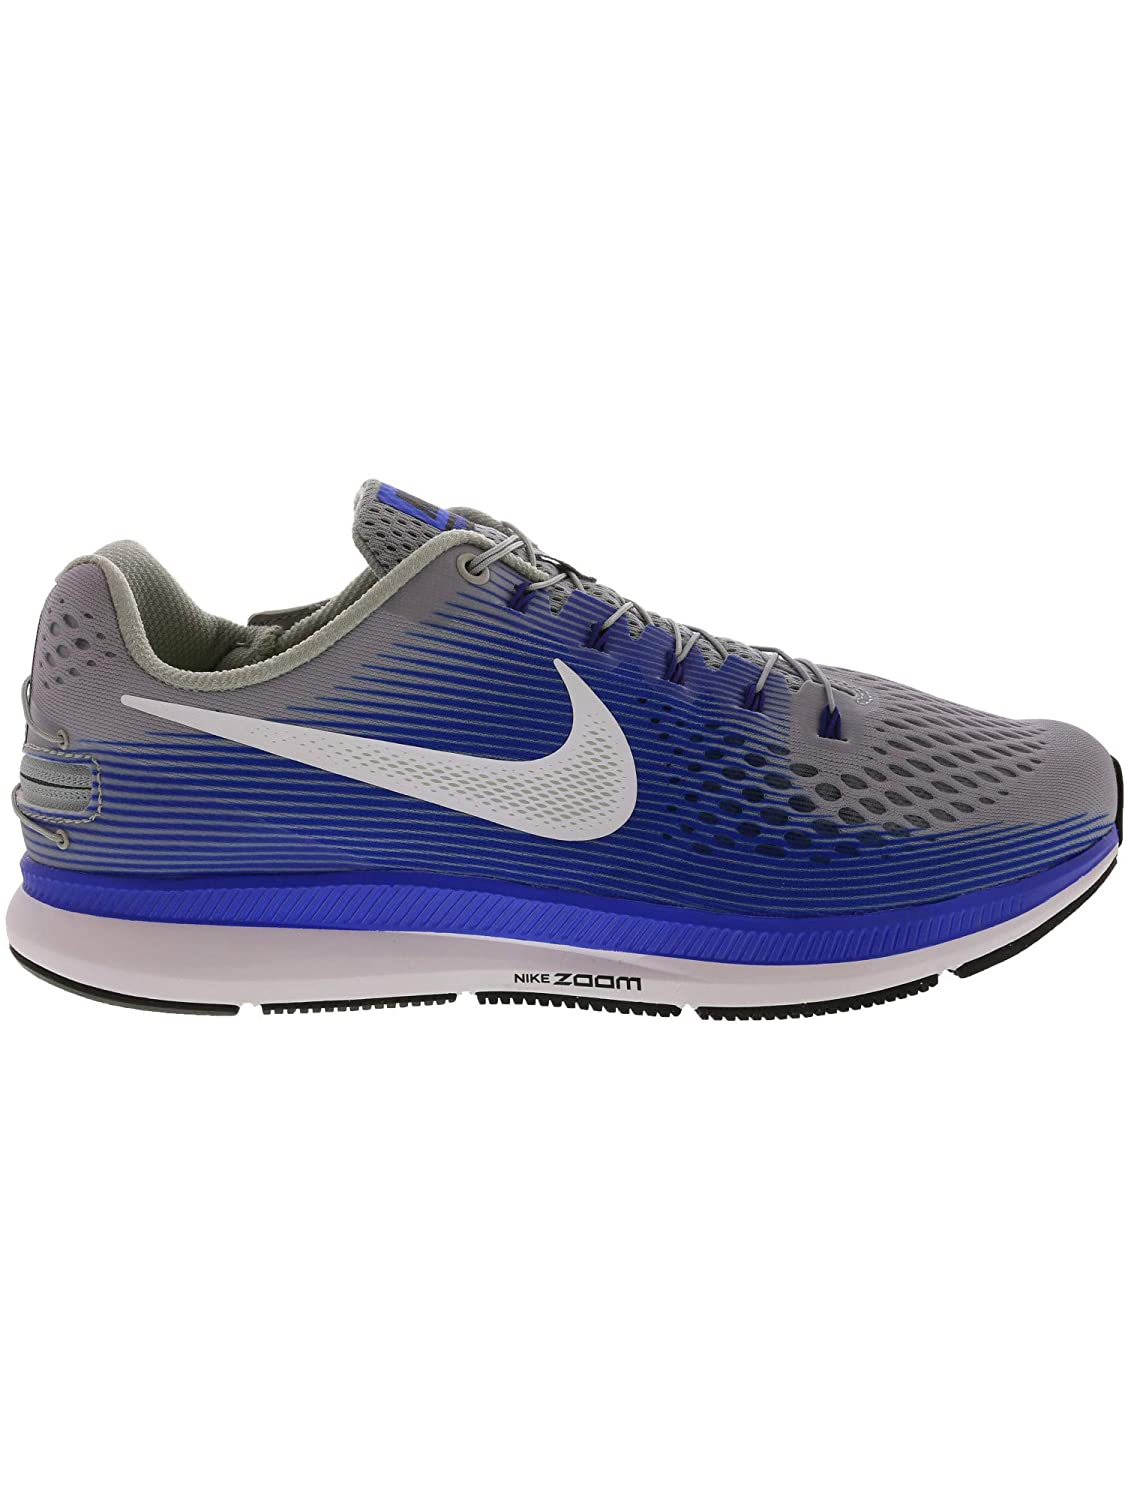 b77b59b45252b NIKE Men's Air Zoom Pegasus 34 Flyease Wolf Grey/White - Racer Blue  Ankle-High Running Shoe 9M